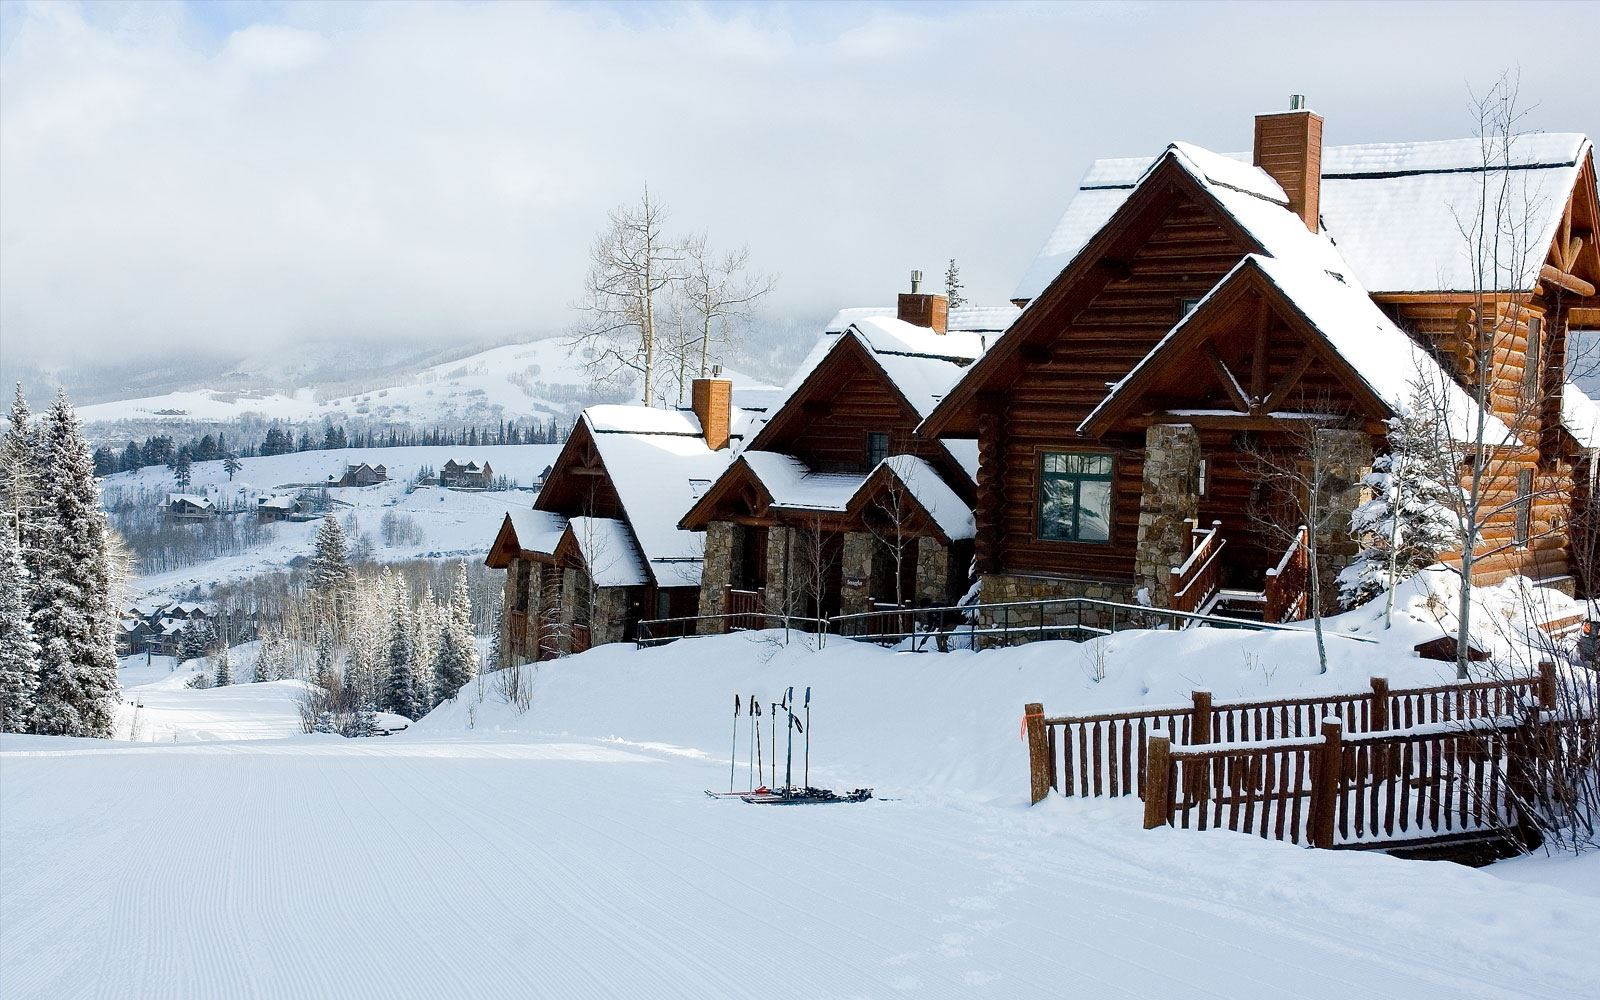 the Mountain Lodge at Telluride